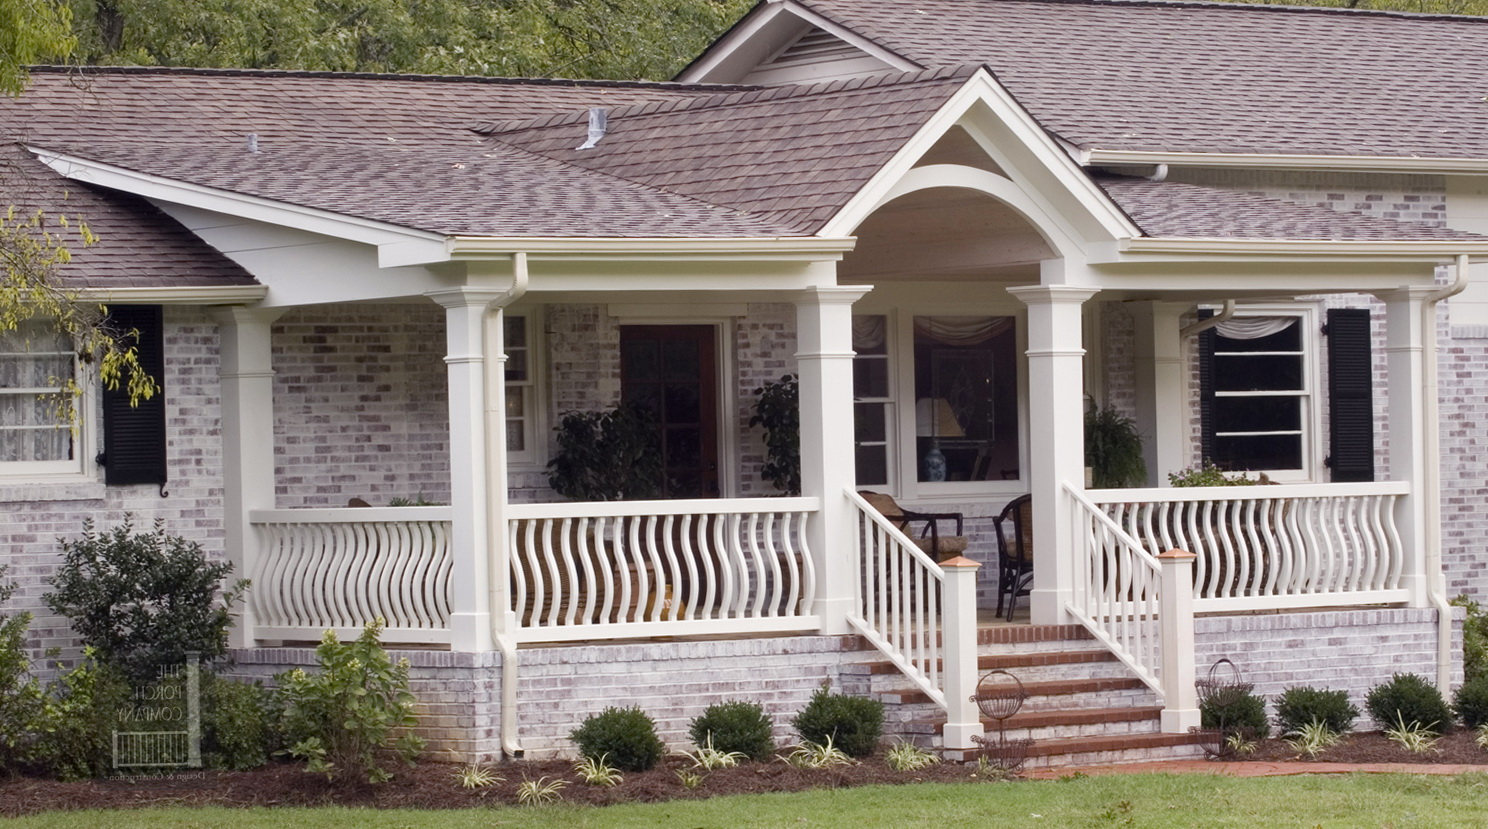 Roof Design Ideas: Flat Porch Roof Design • Porches Ideas